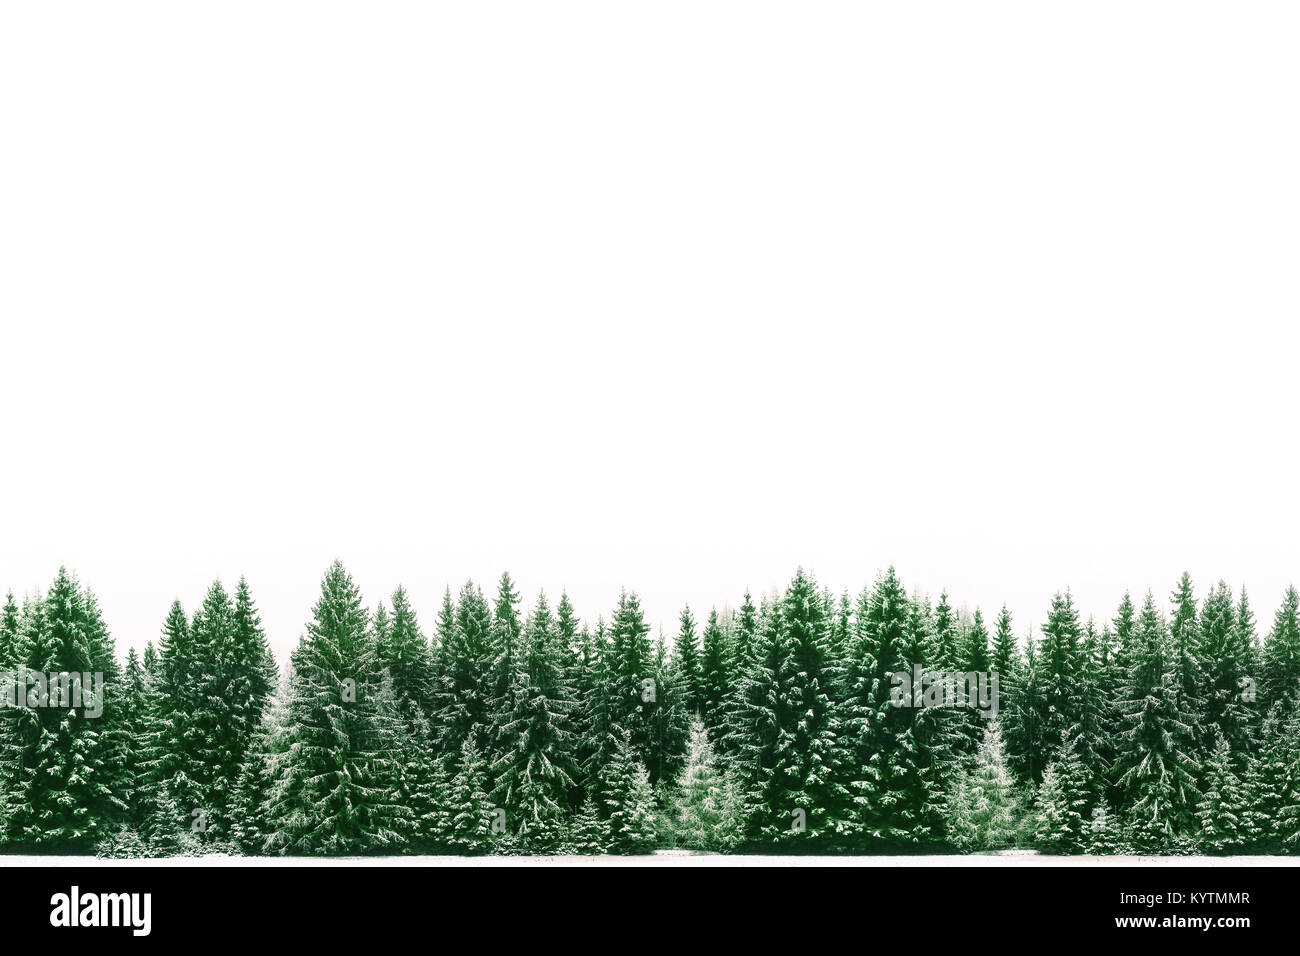 border frame of green spruce pine trees forest covered by fresh snow during winter christmas time and new year with large empty white blank space for